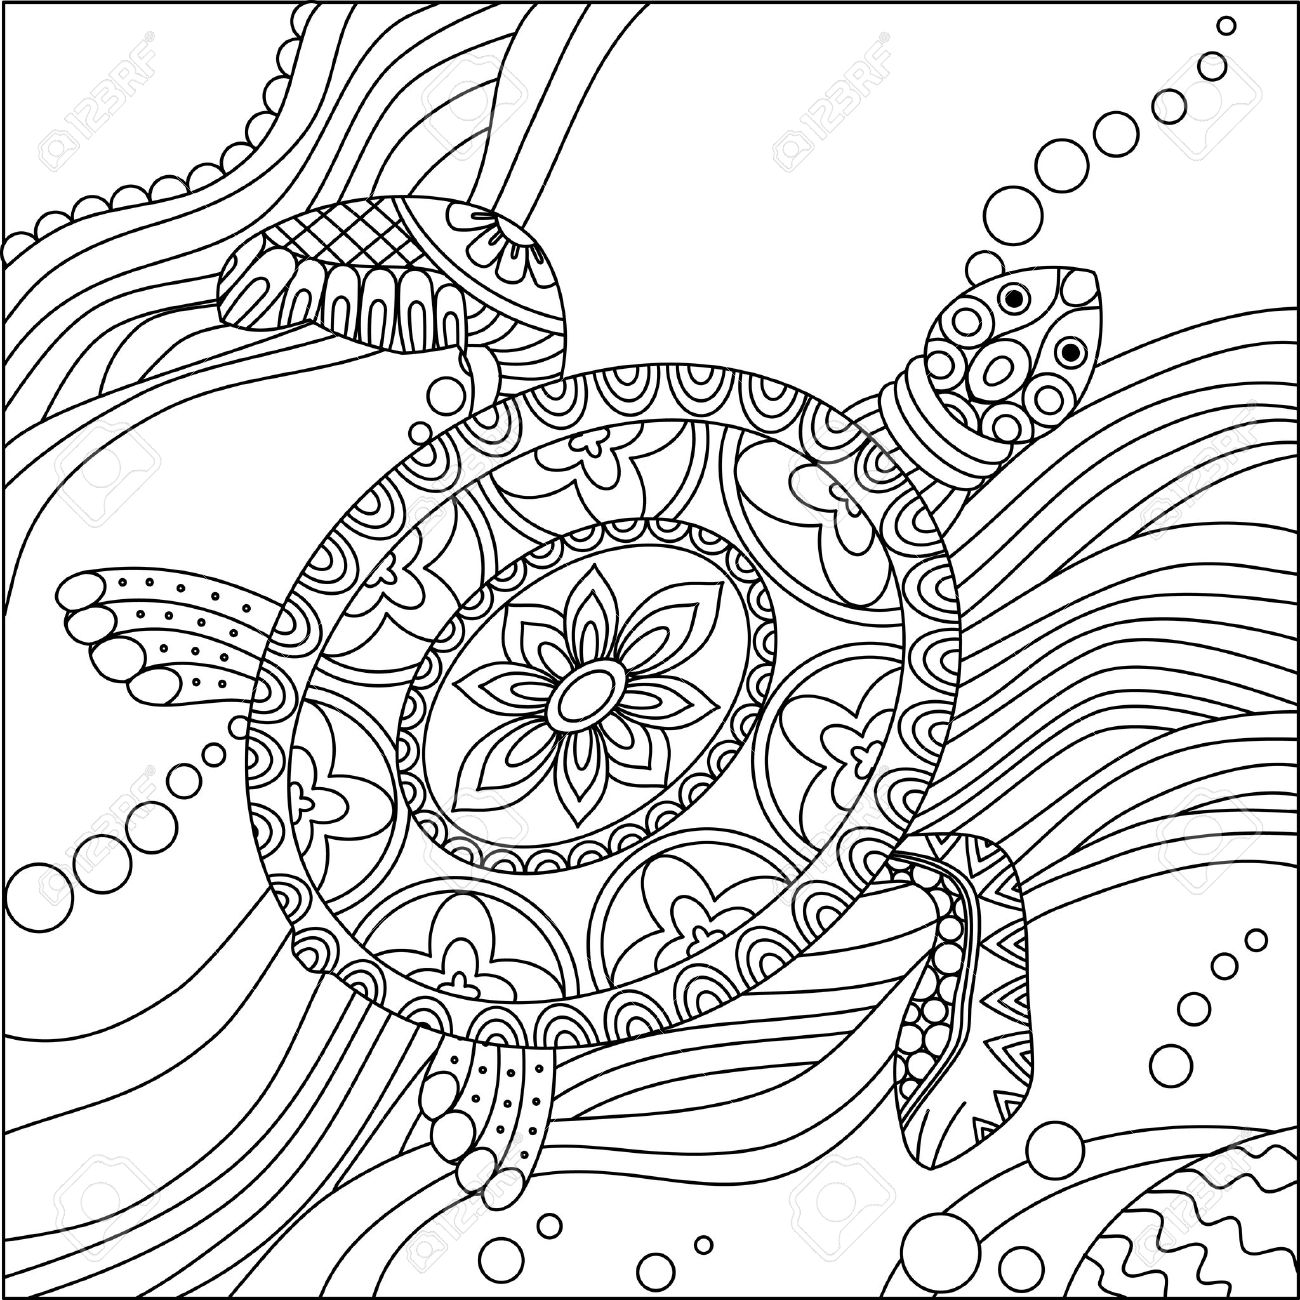 Sea Turtle Doodle Hand Drawn Vector Illustration Coloring Book Pages For Kids And Adults